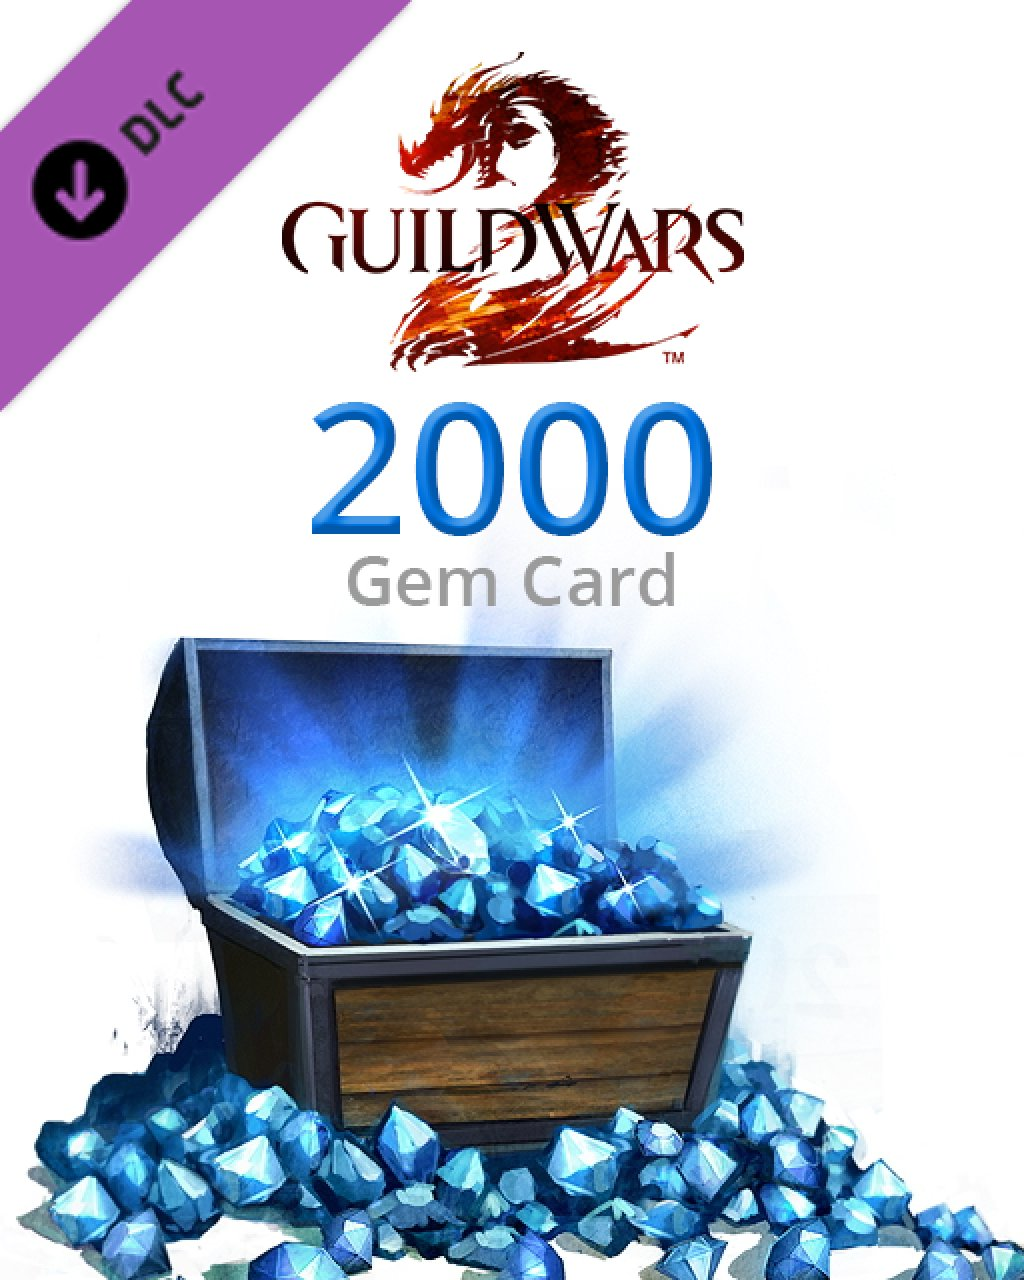 Guild Wars 2 2000 Gem Card